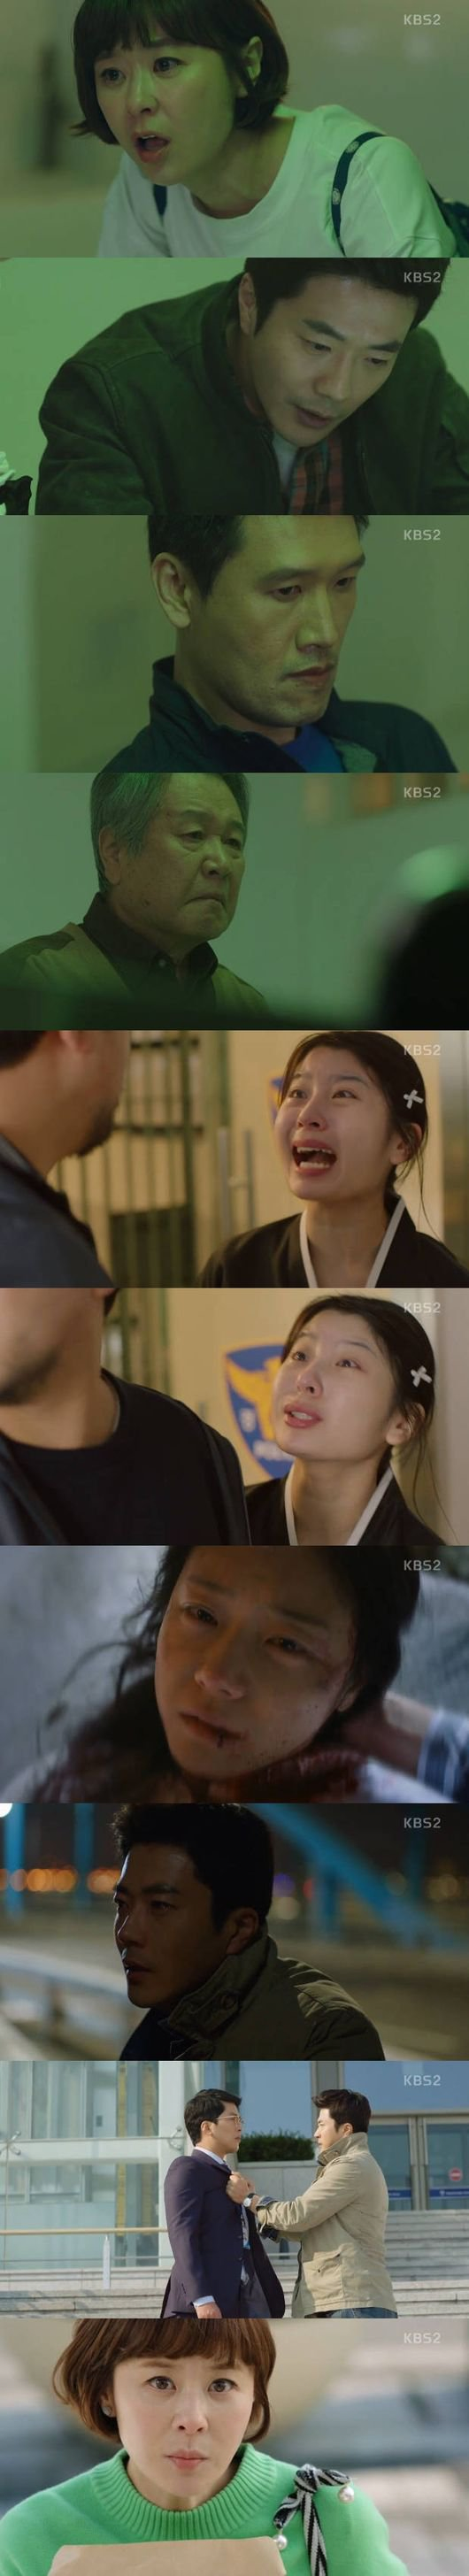 "[Spoiler] ""Mystery Queen"" Choi Kang-hee and Kwon Sang-woo catch the culprit father and son"